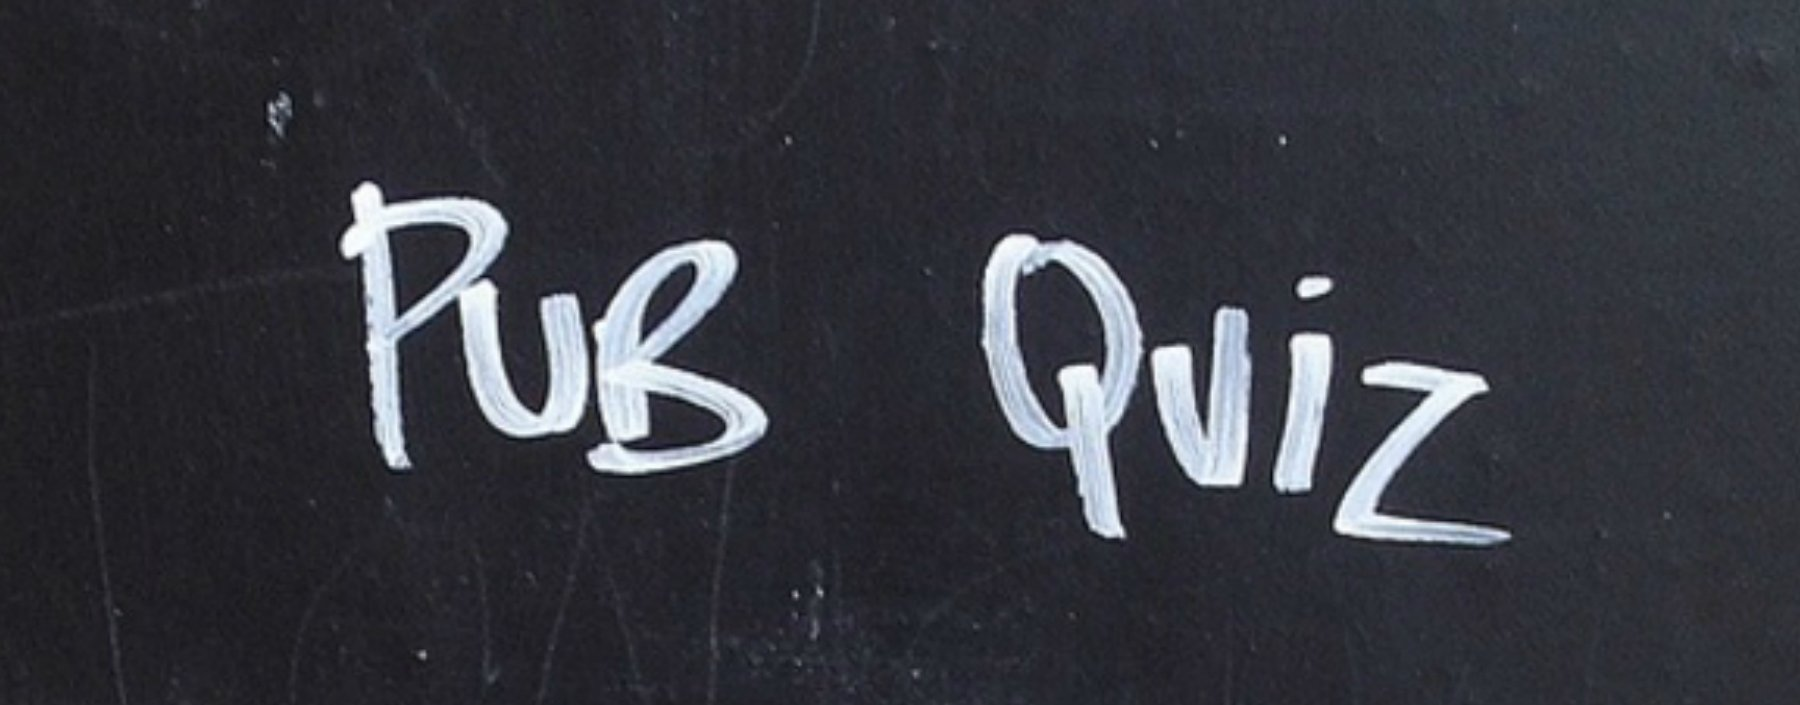 Quiz team names - list of funny and witty names for your pub or